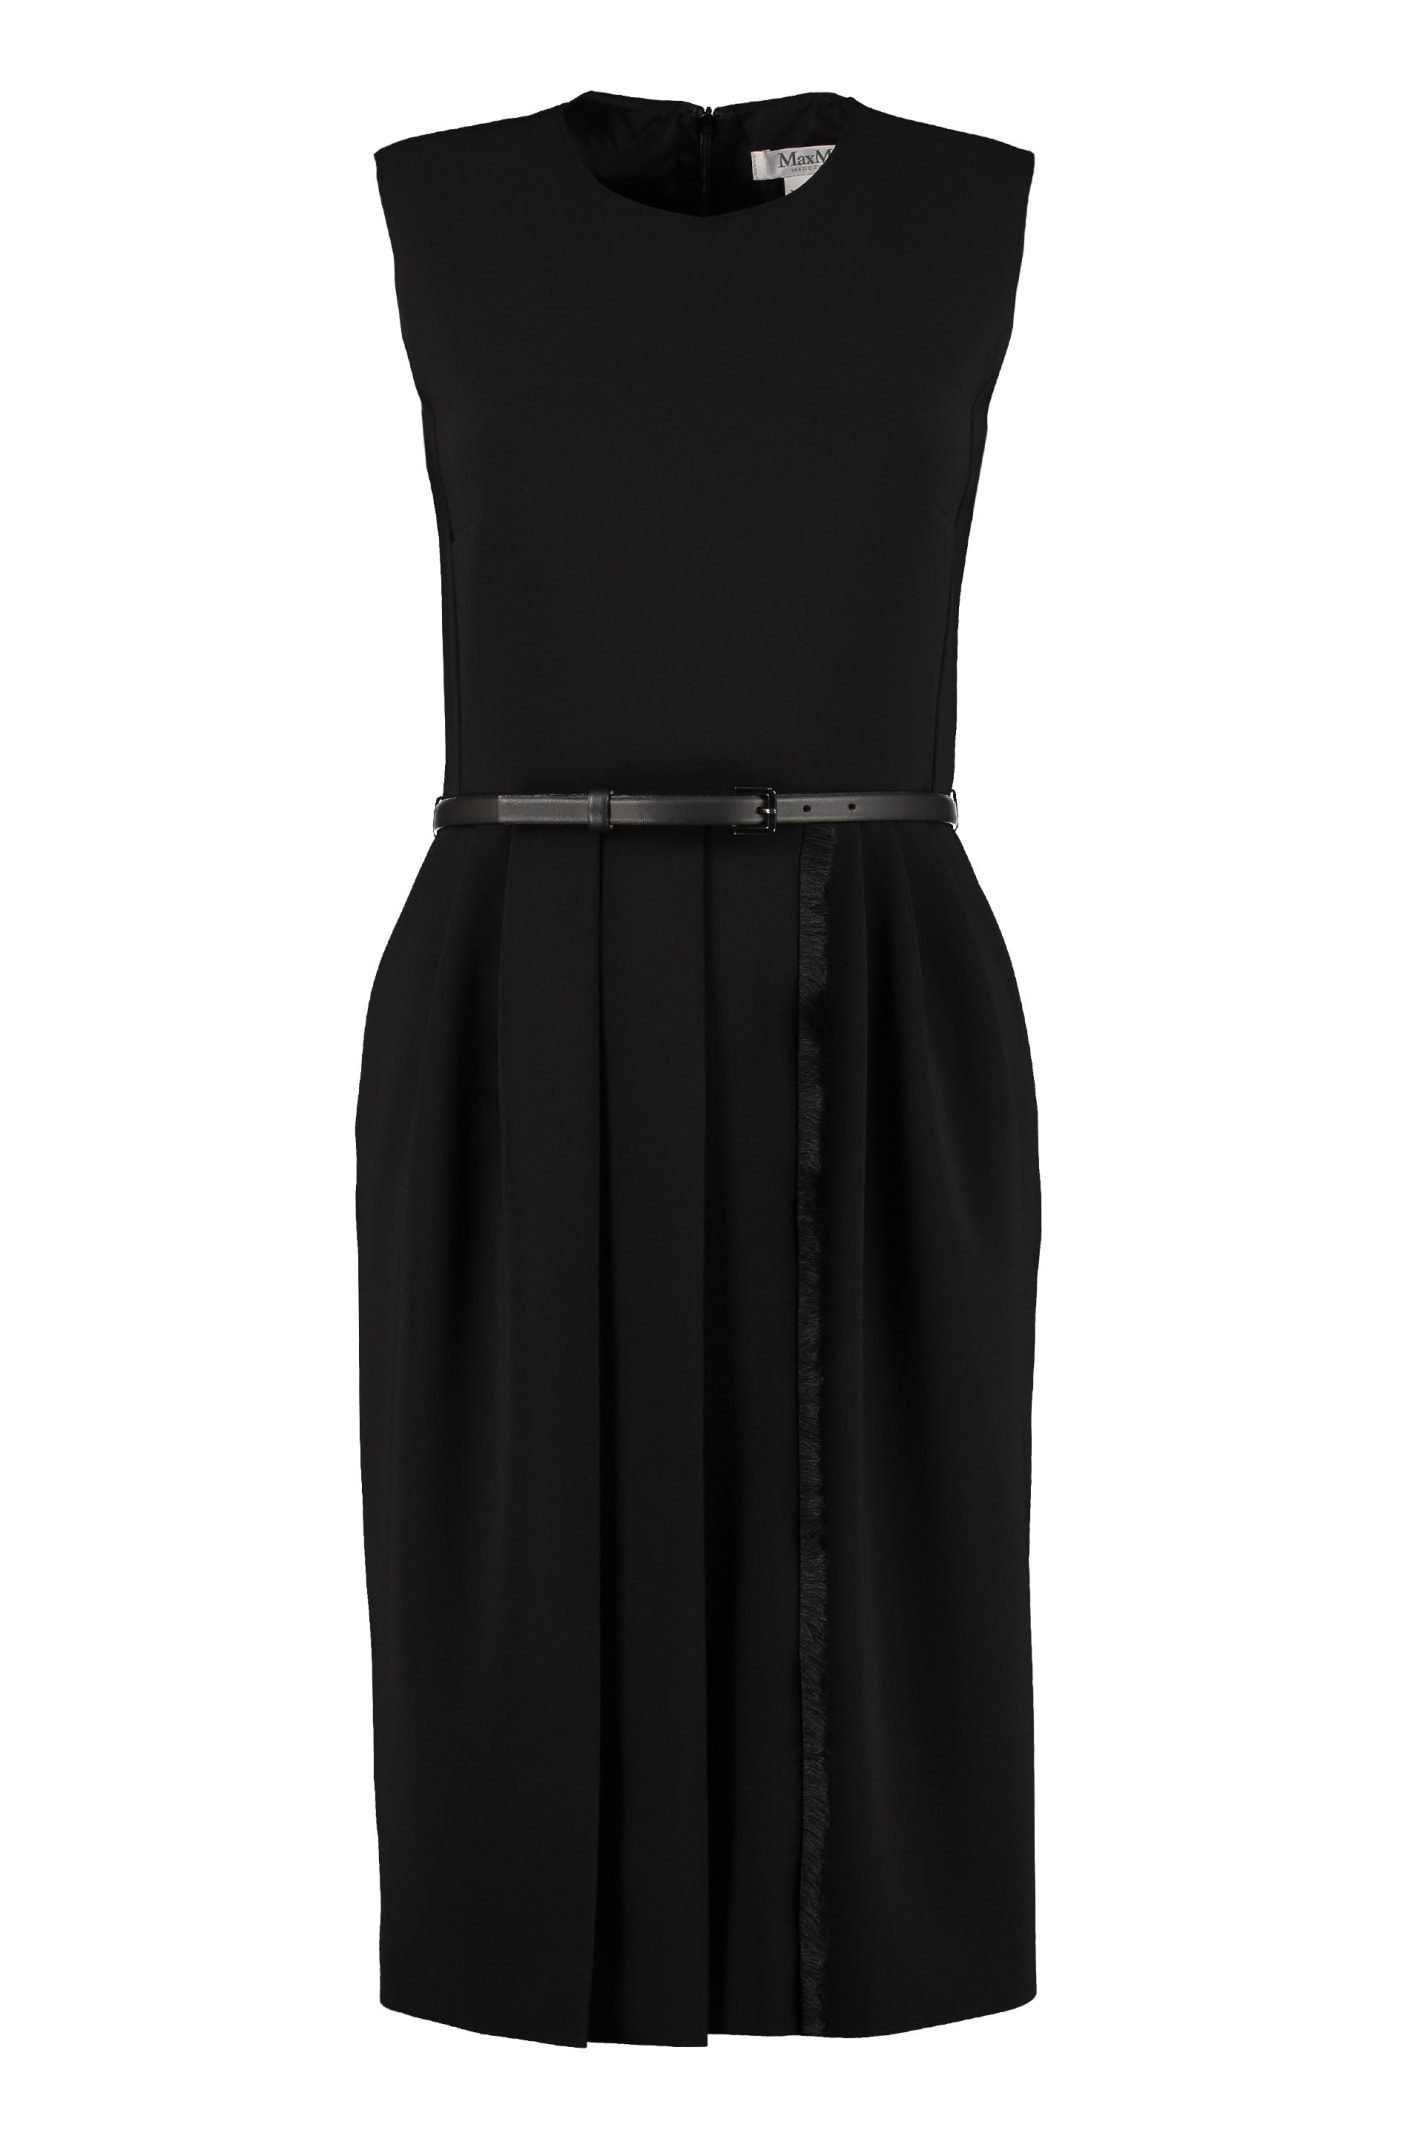 Buy Max Mara Pedale Belted Sheath Dress online, shop Max Mara with free shipping